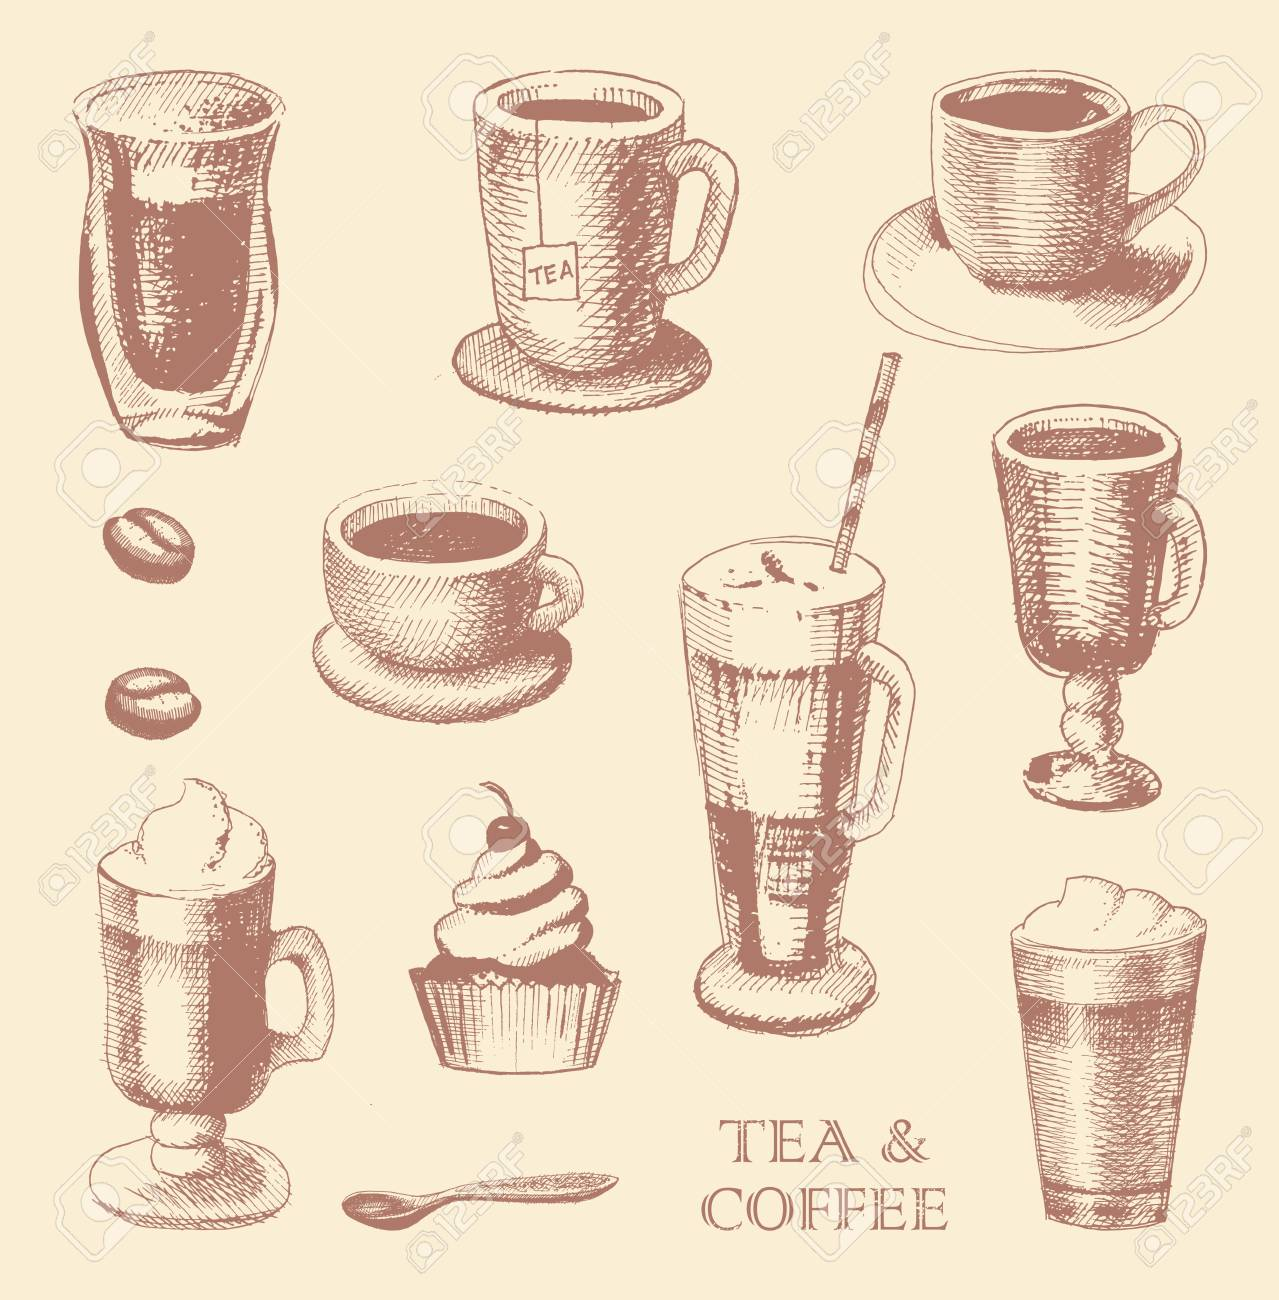 Set Of Coffe And Tea Mugs Vector Drawing Sketch Style Royalty Free Cliparts Vectors And Stock Illustration Image 68871496